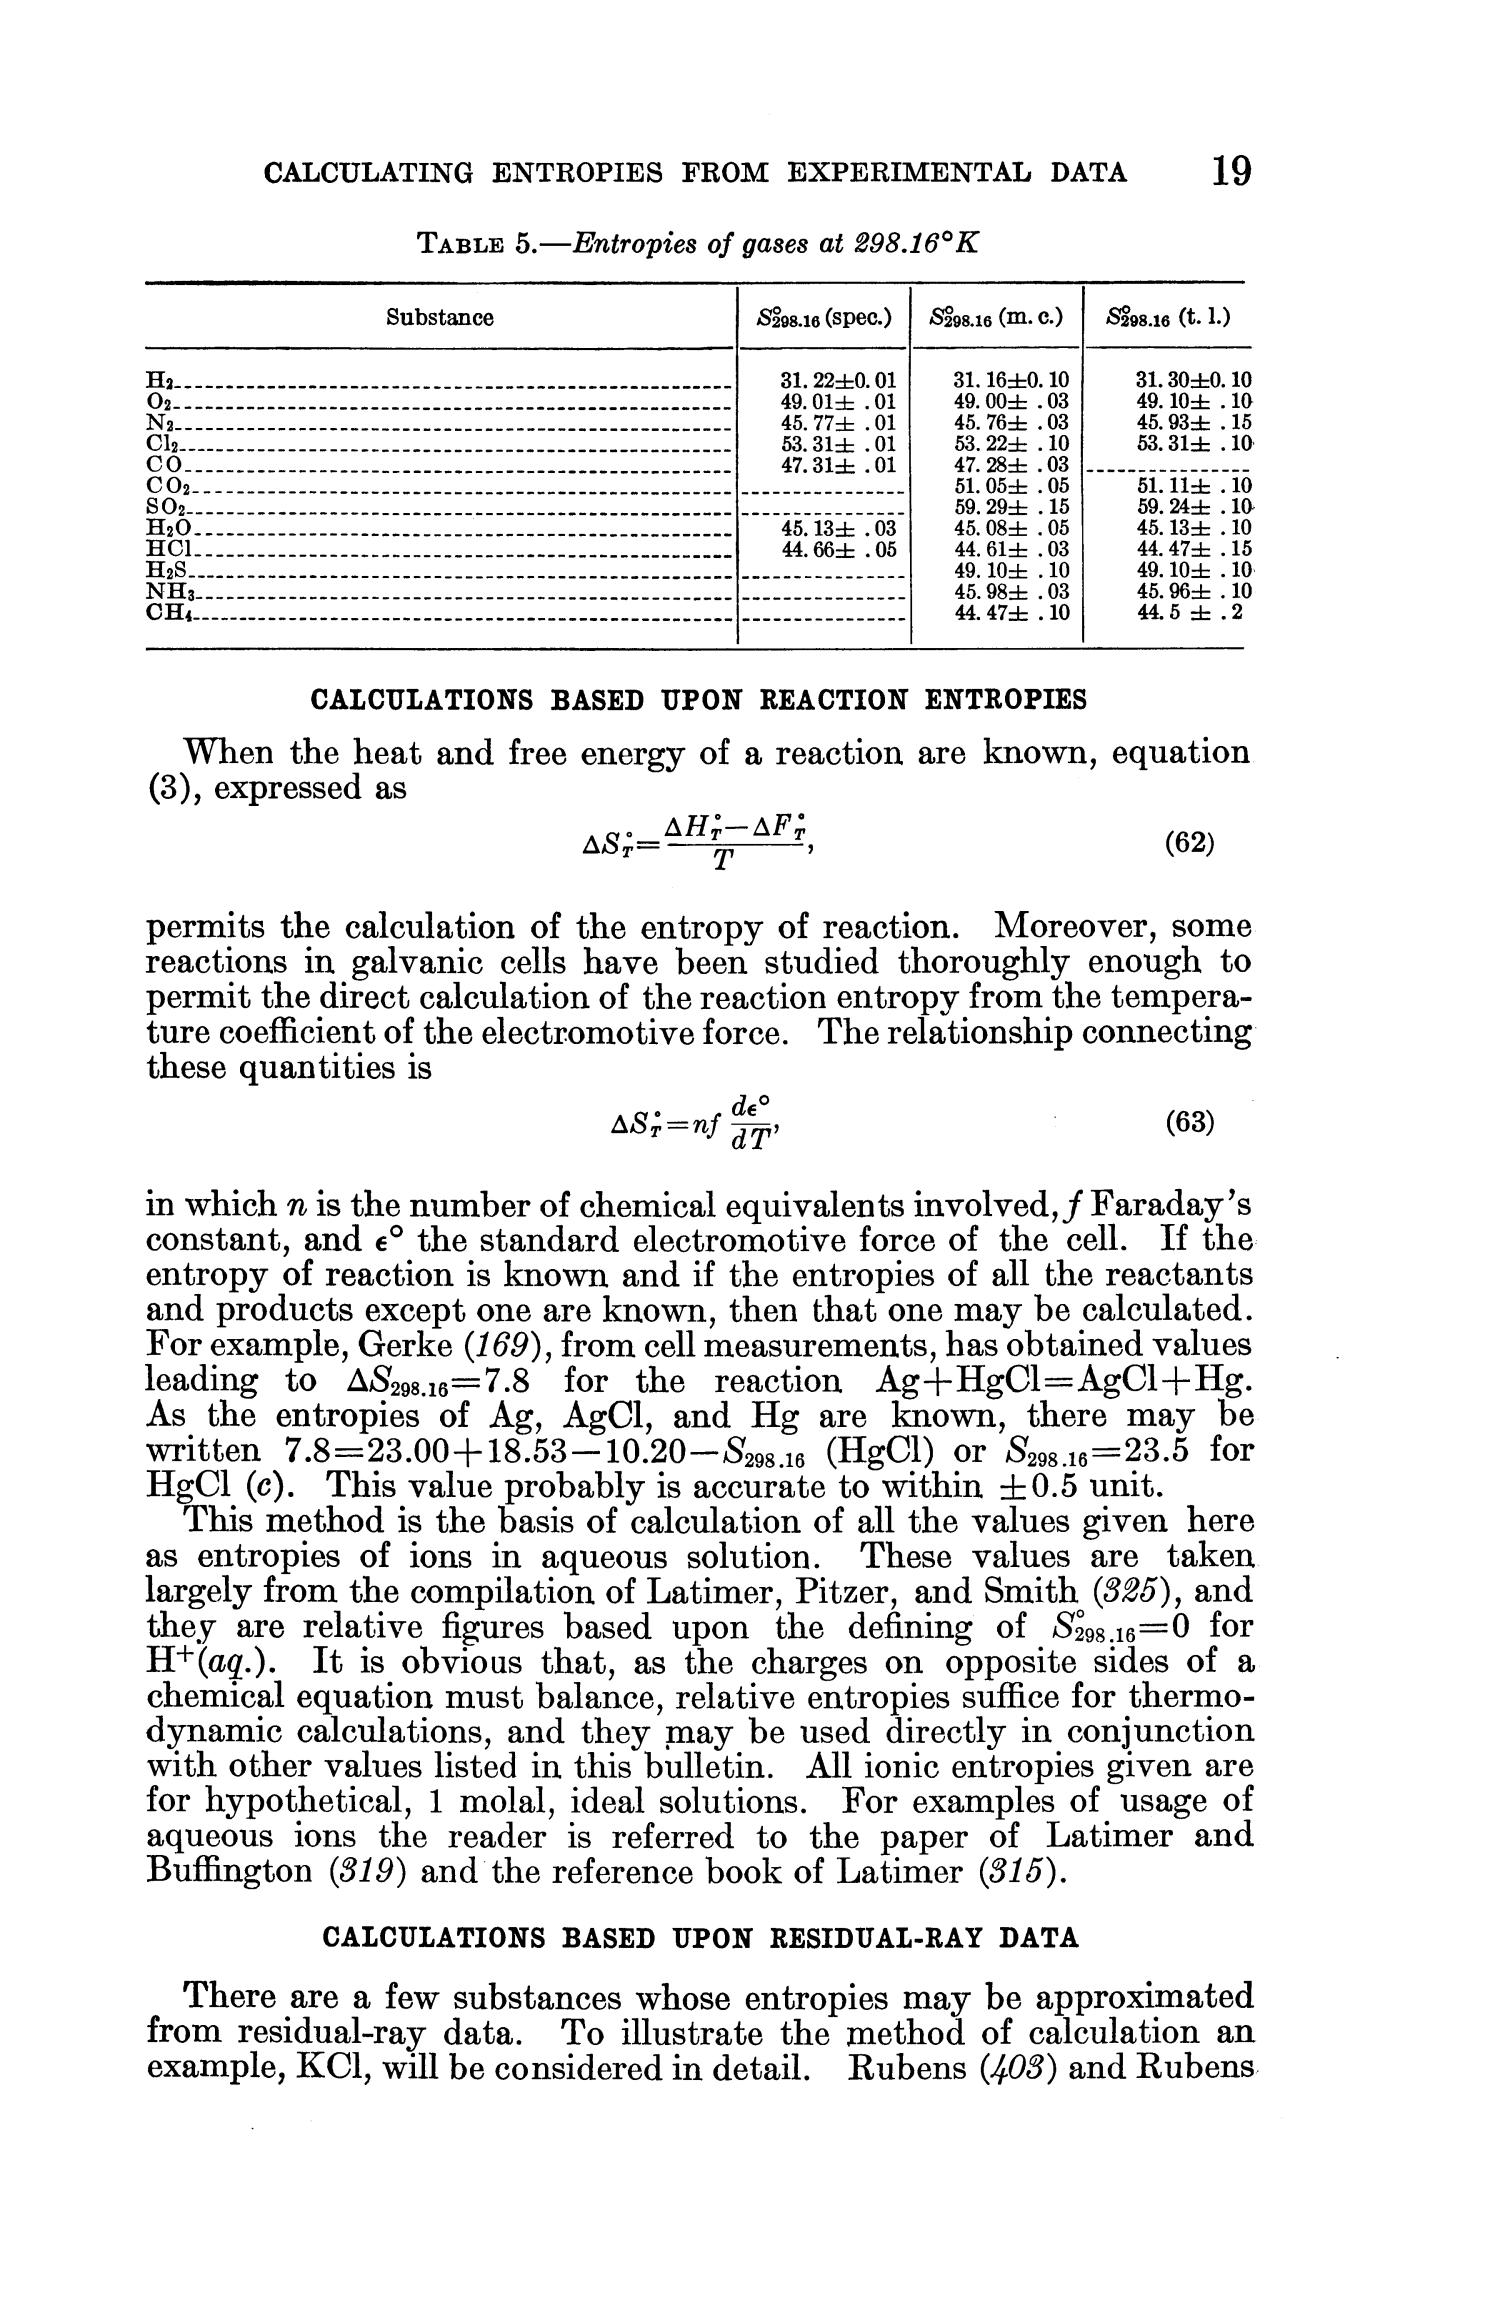 Contributions to the Data on Theoretical Metallurgy: [Part] 11. Entropies of Inorganic Substances: Revision (1948) of Data and Methods of Calculation                                                                                                      19